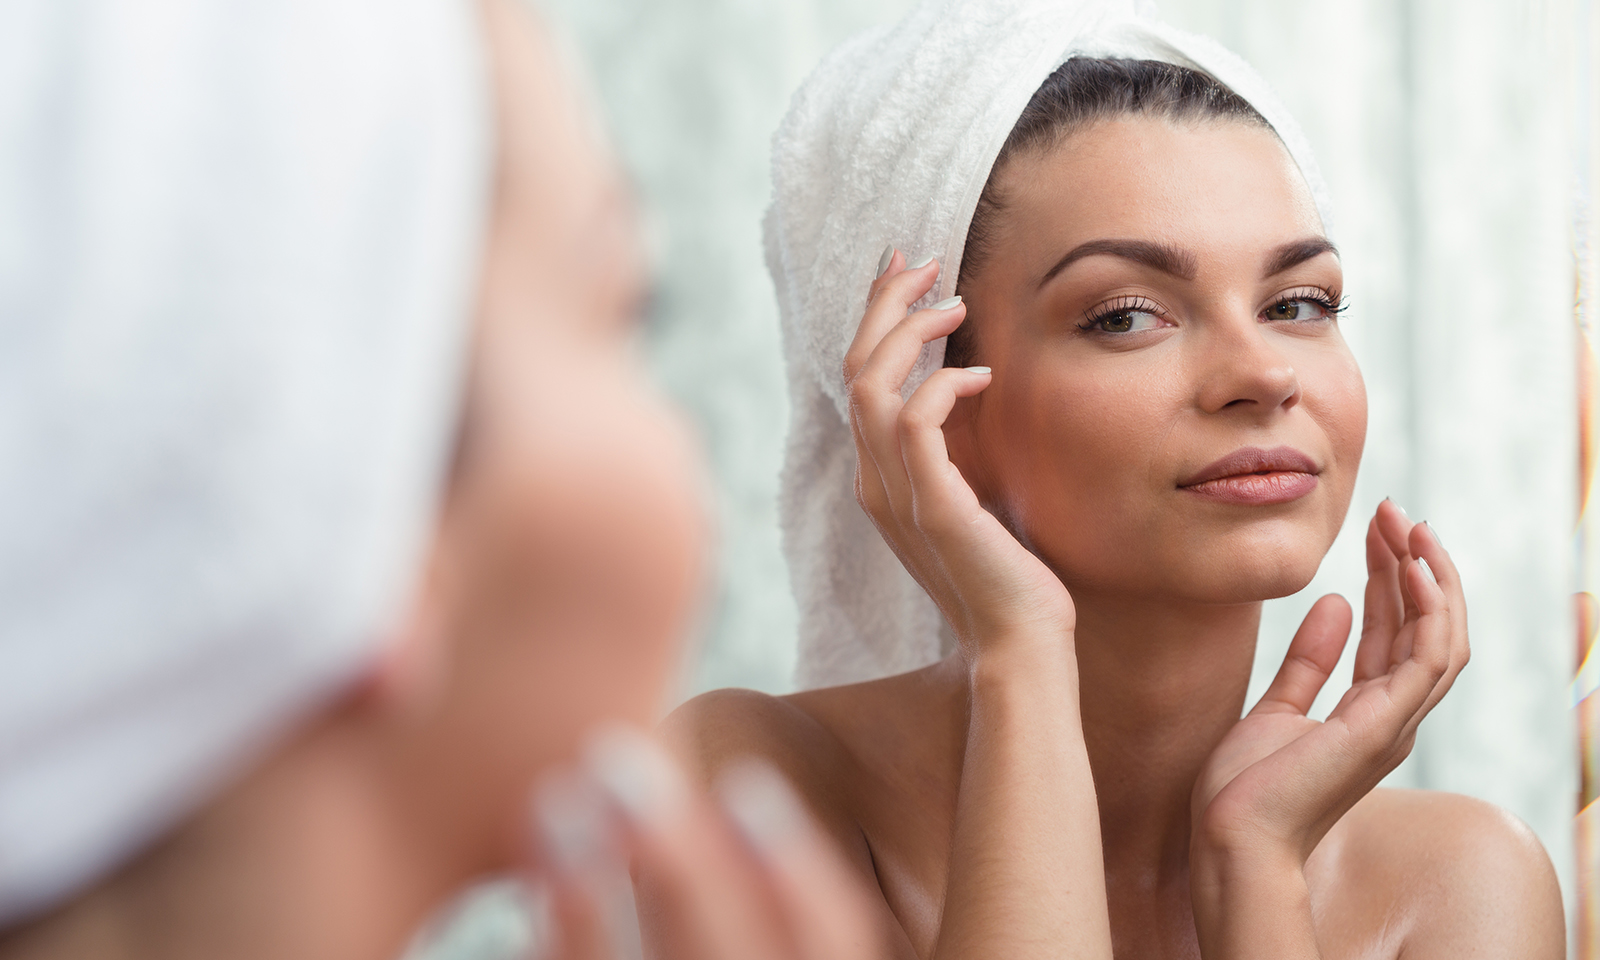 woman-looking-in-mirror-at-face-with-no-makeup-main-image